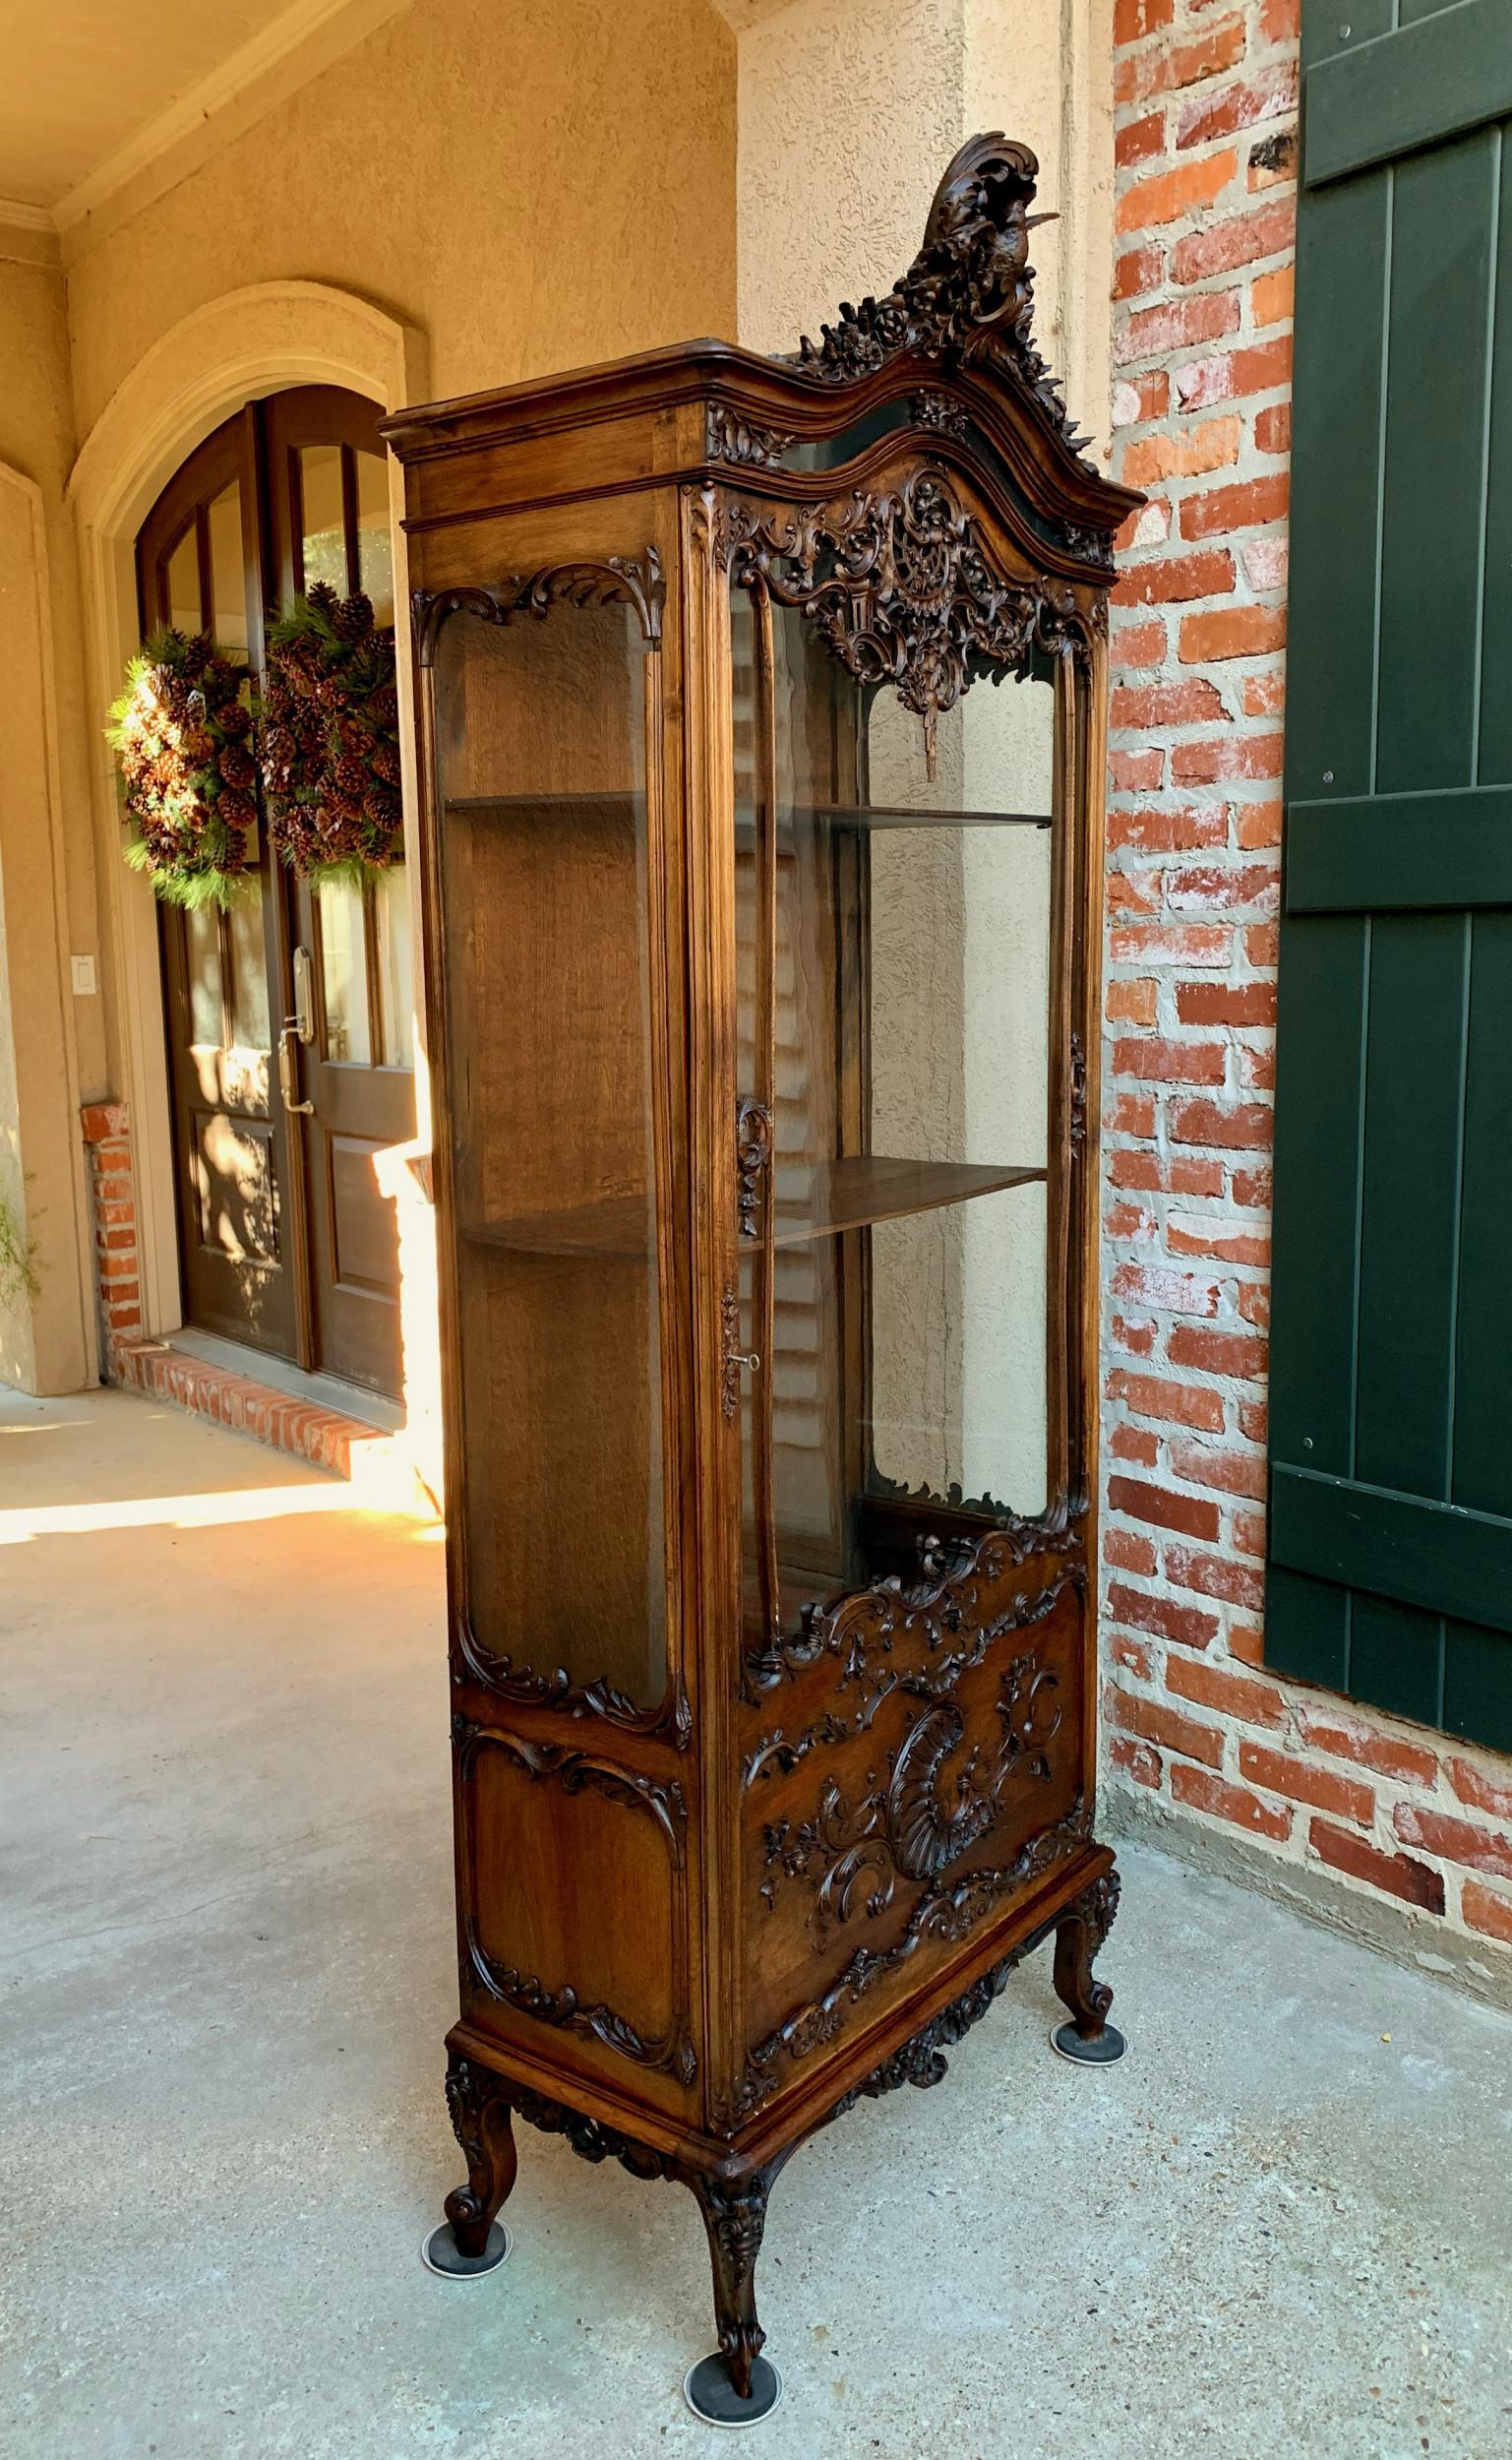 Antique French Display Cabinet 19th Century A Wonderful And Extremely Rare Hand Carved Treasure Cabinet